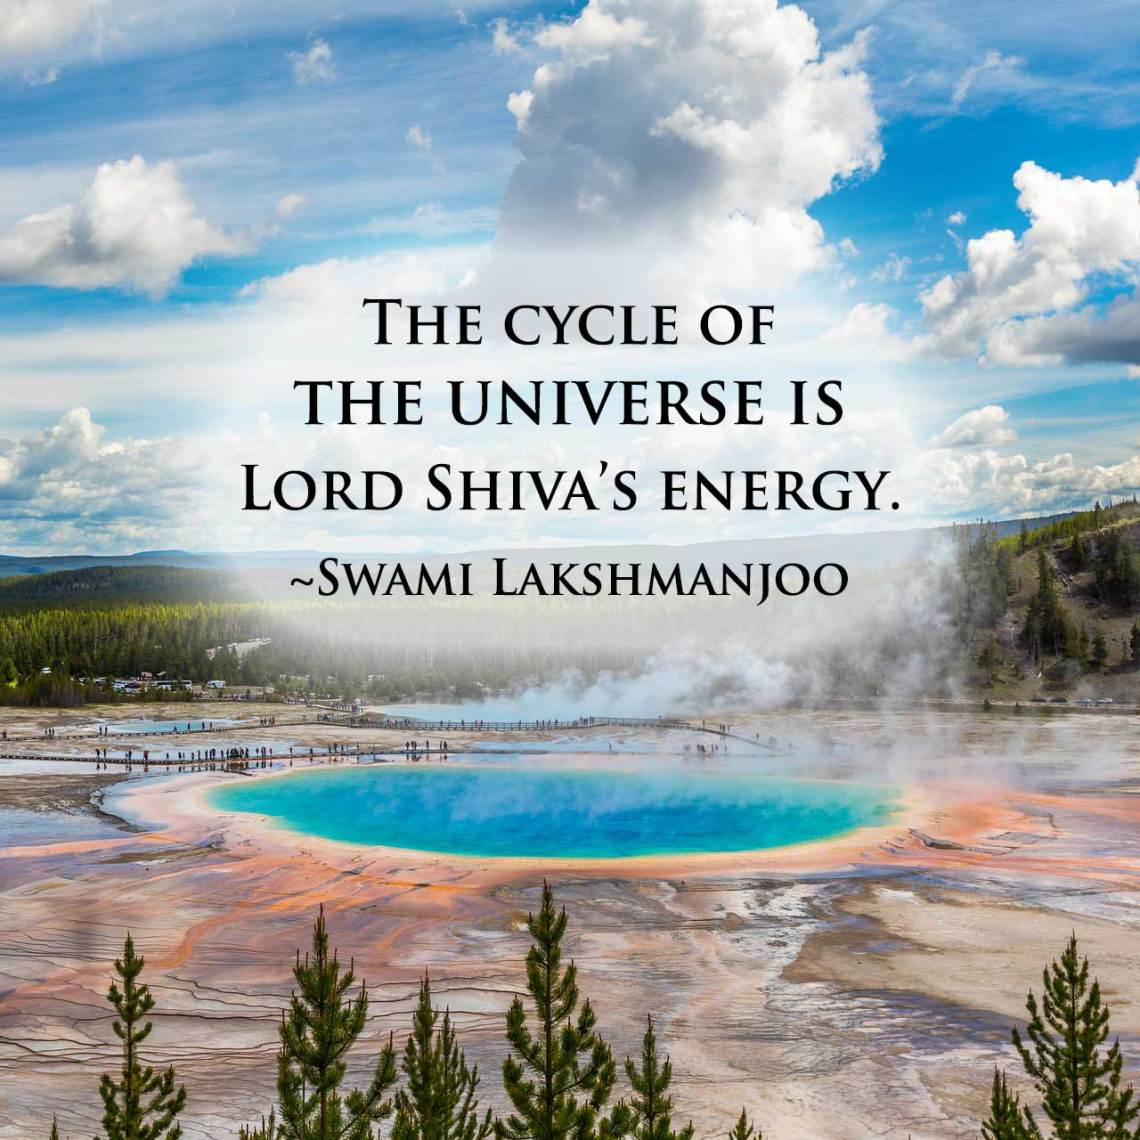 The cycle of the universe is Lord Shiva's energy. ~Swami Lakshmanjoo